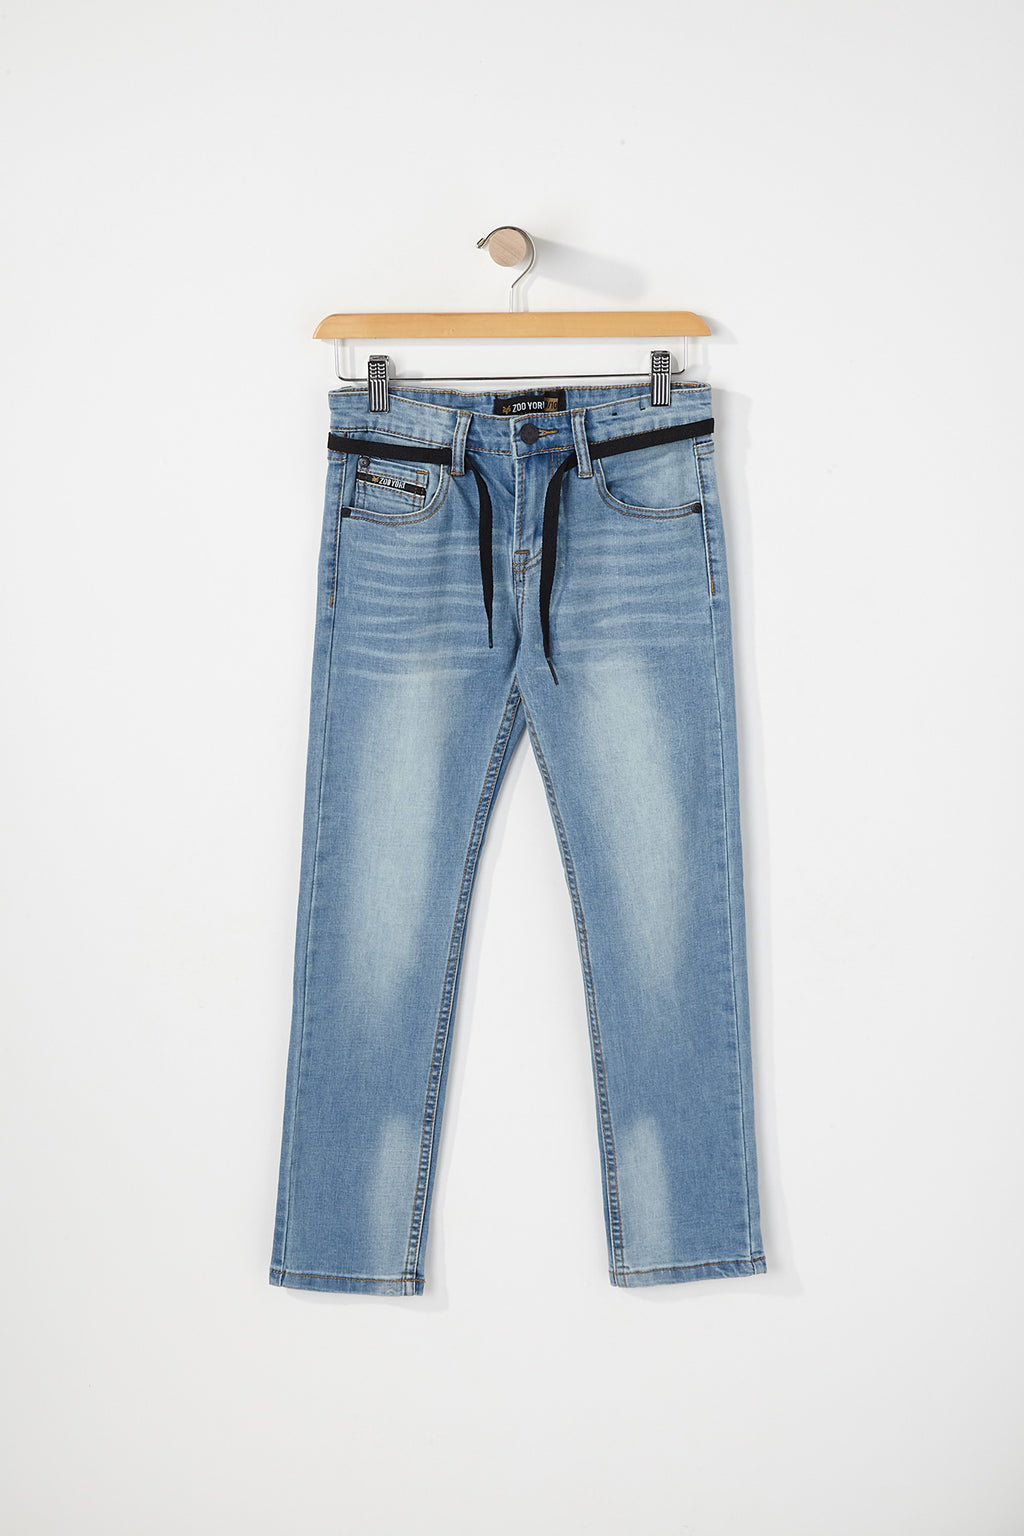 Zoo York Boys Light Wash Skinny Jeans